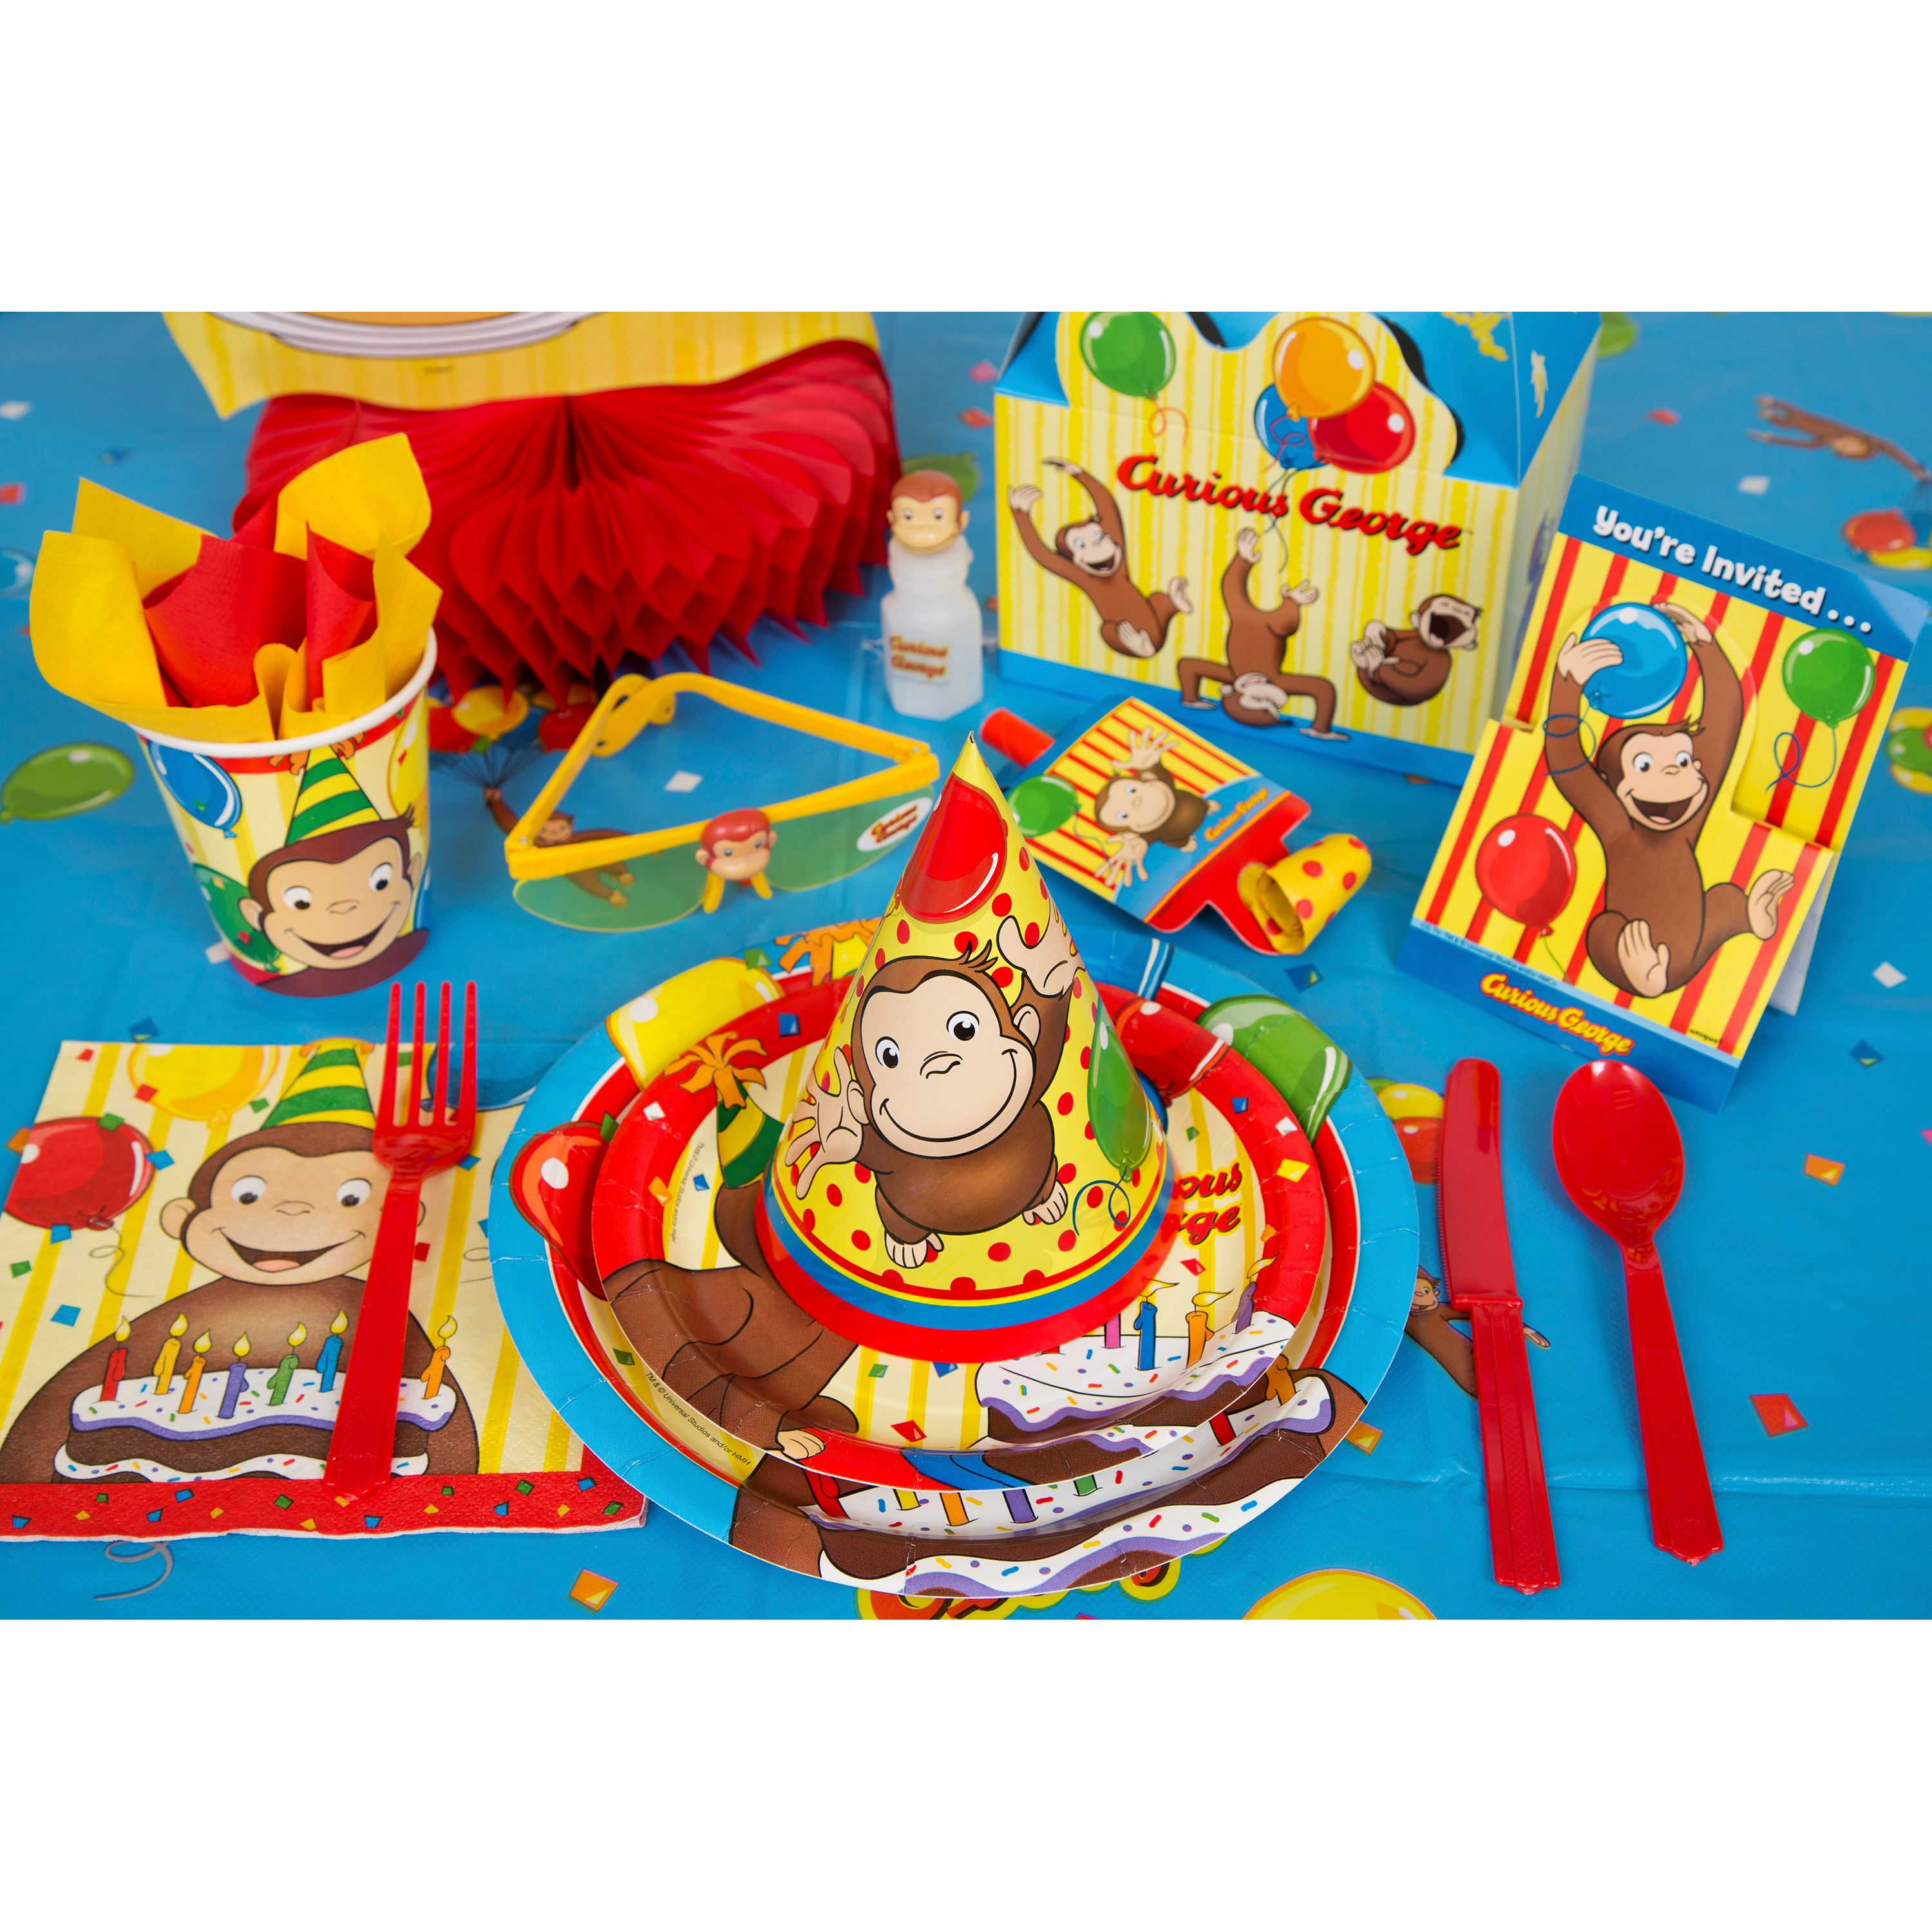 Curious George Party Supplies - Walmart.com